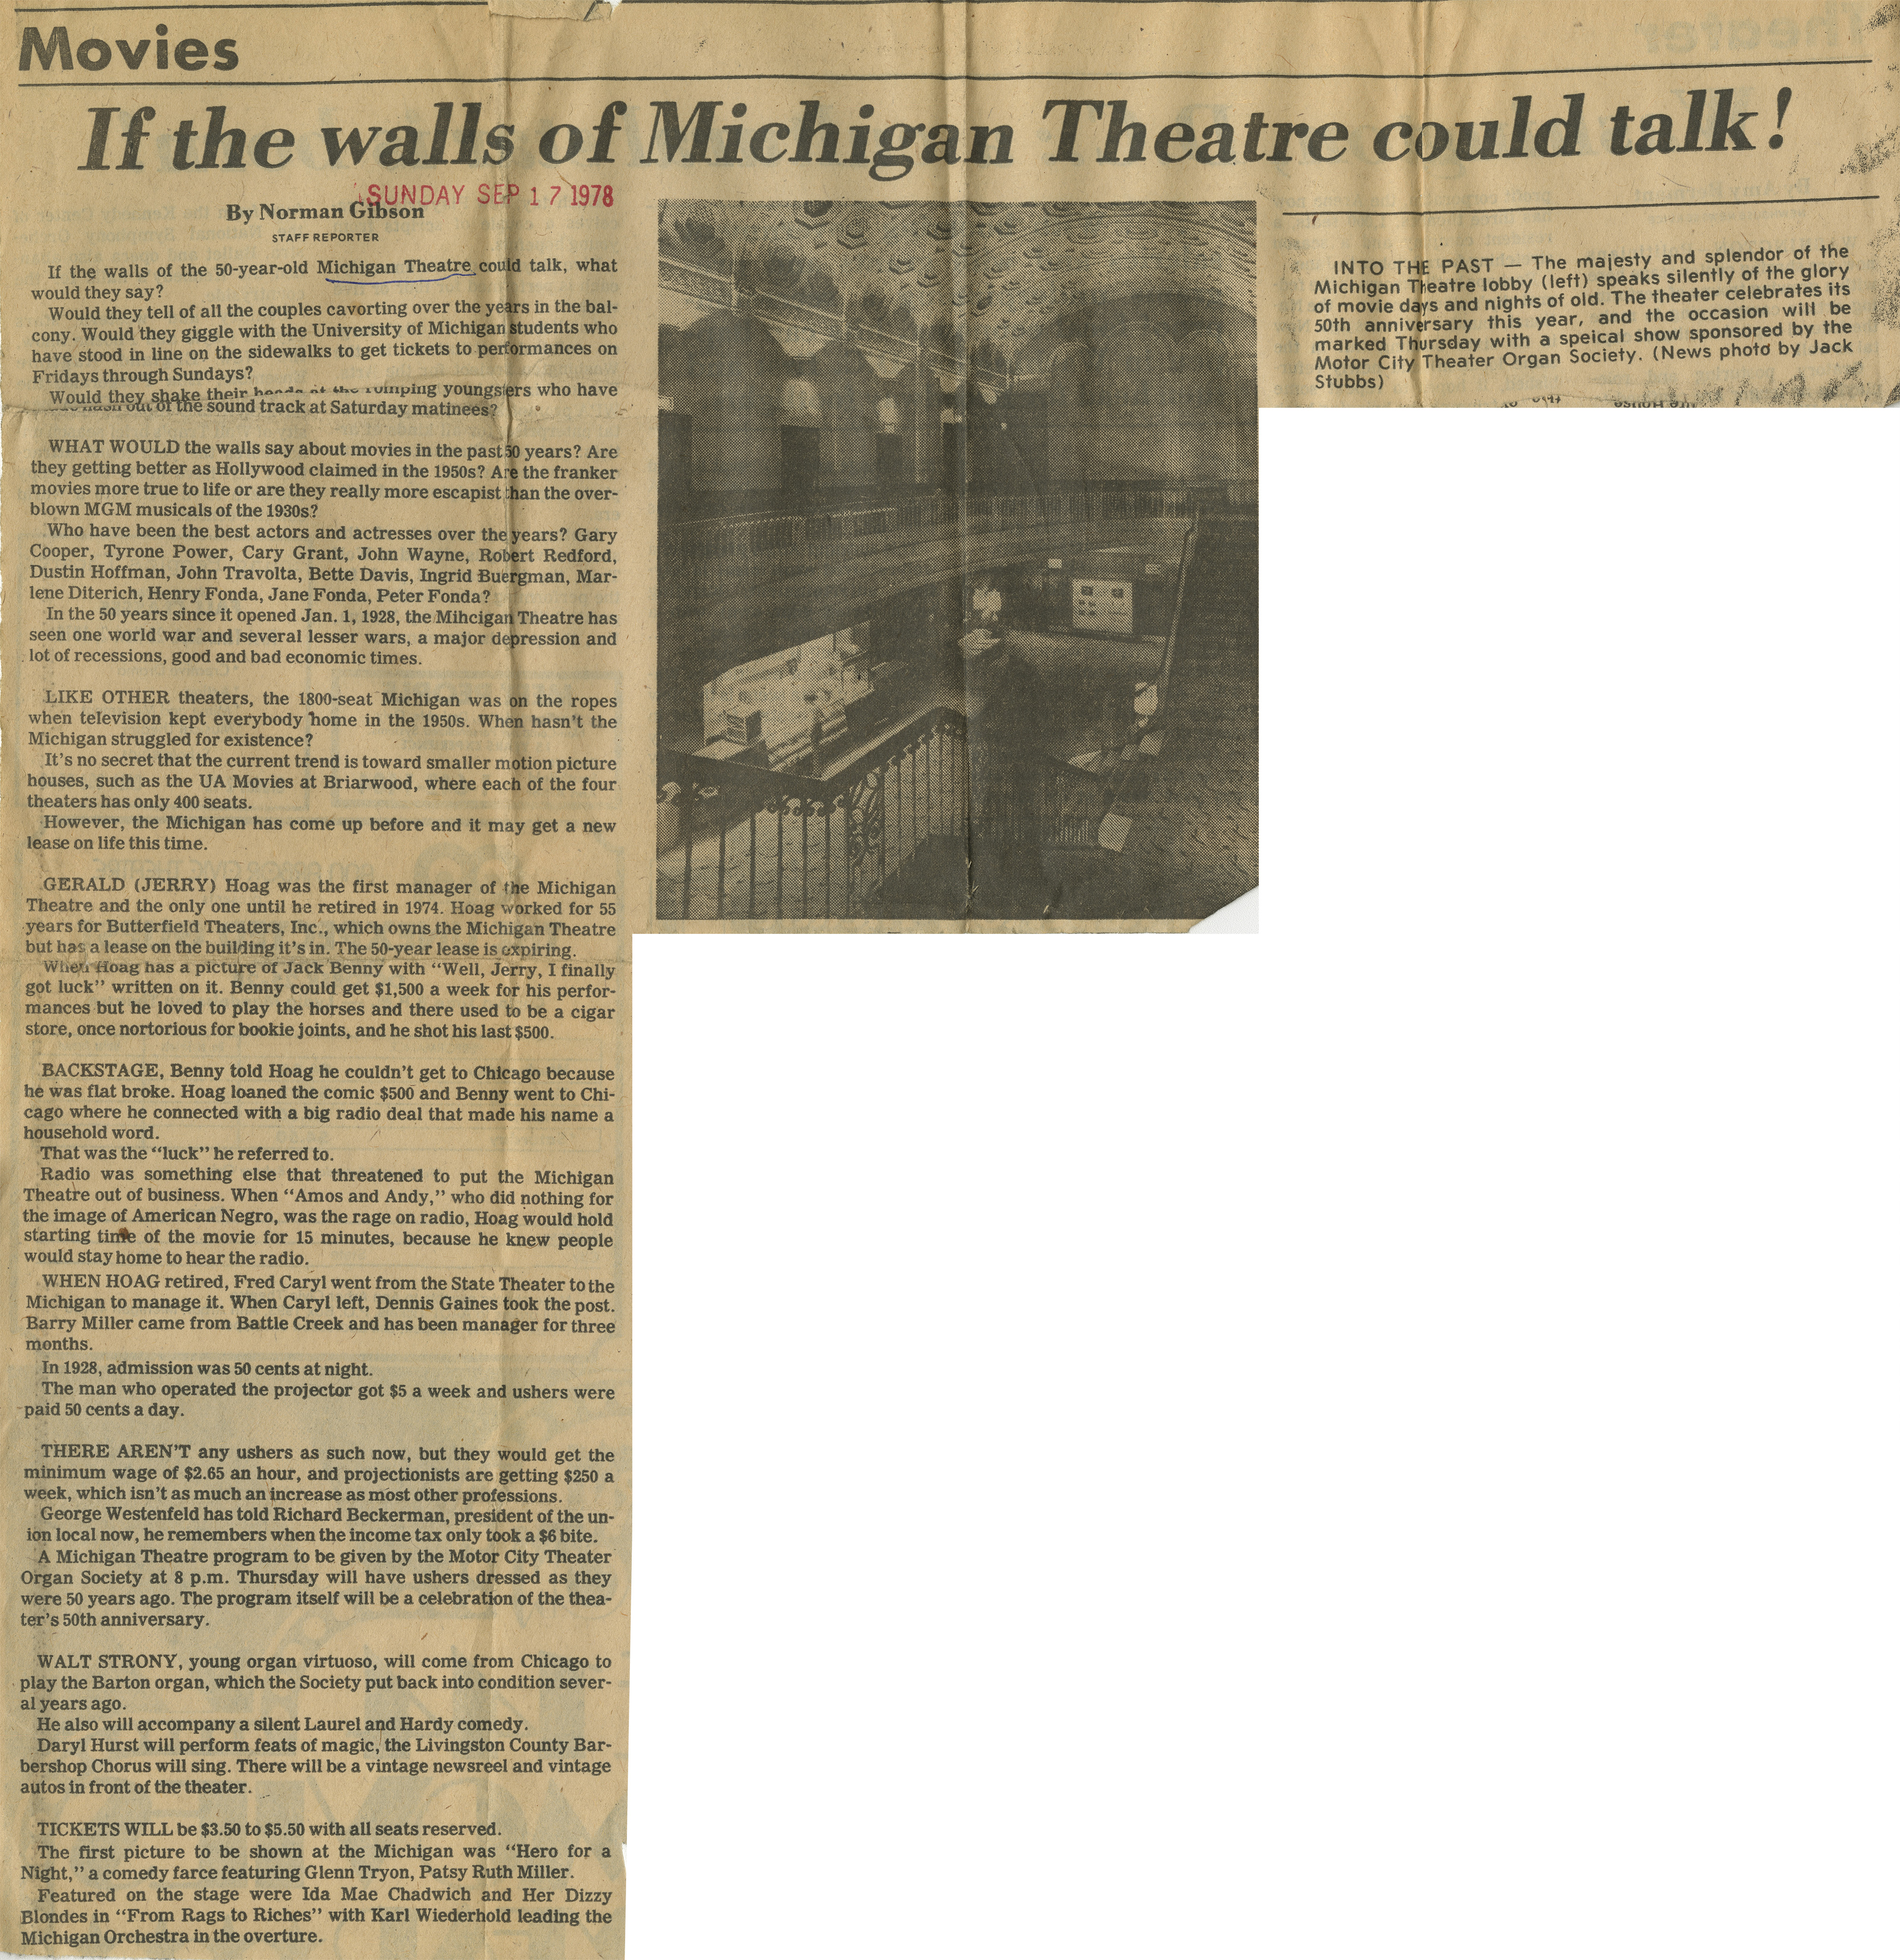 If the walls of the Michigan Theatre could talk! image